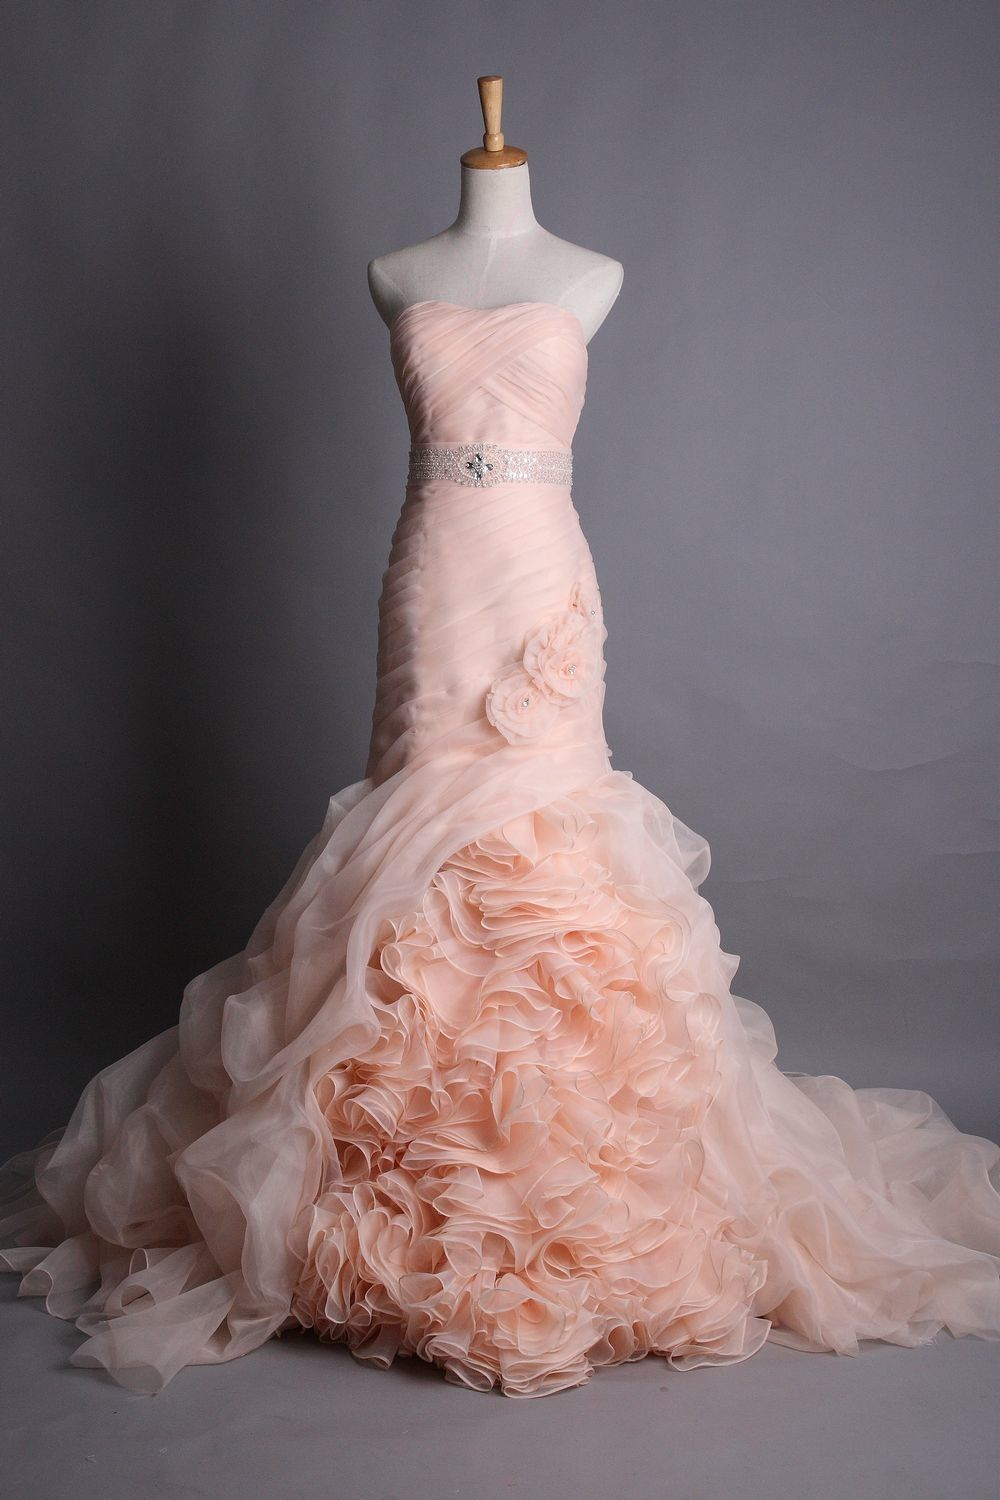 Princess Qualities | Fab Fashion | Pinterest | Vestidos increíbles ...